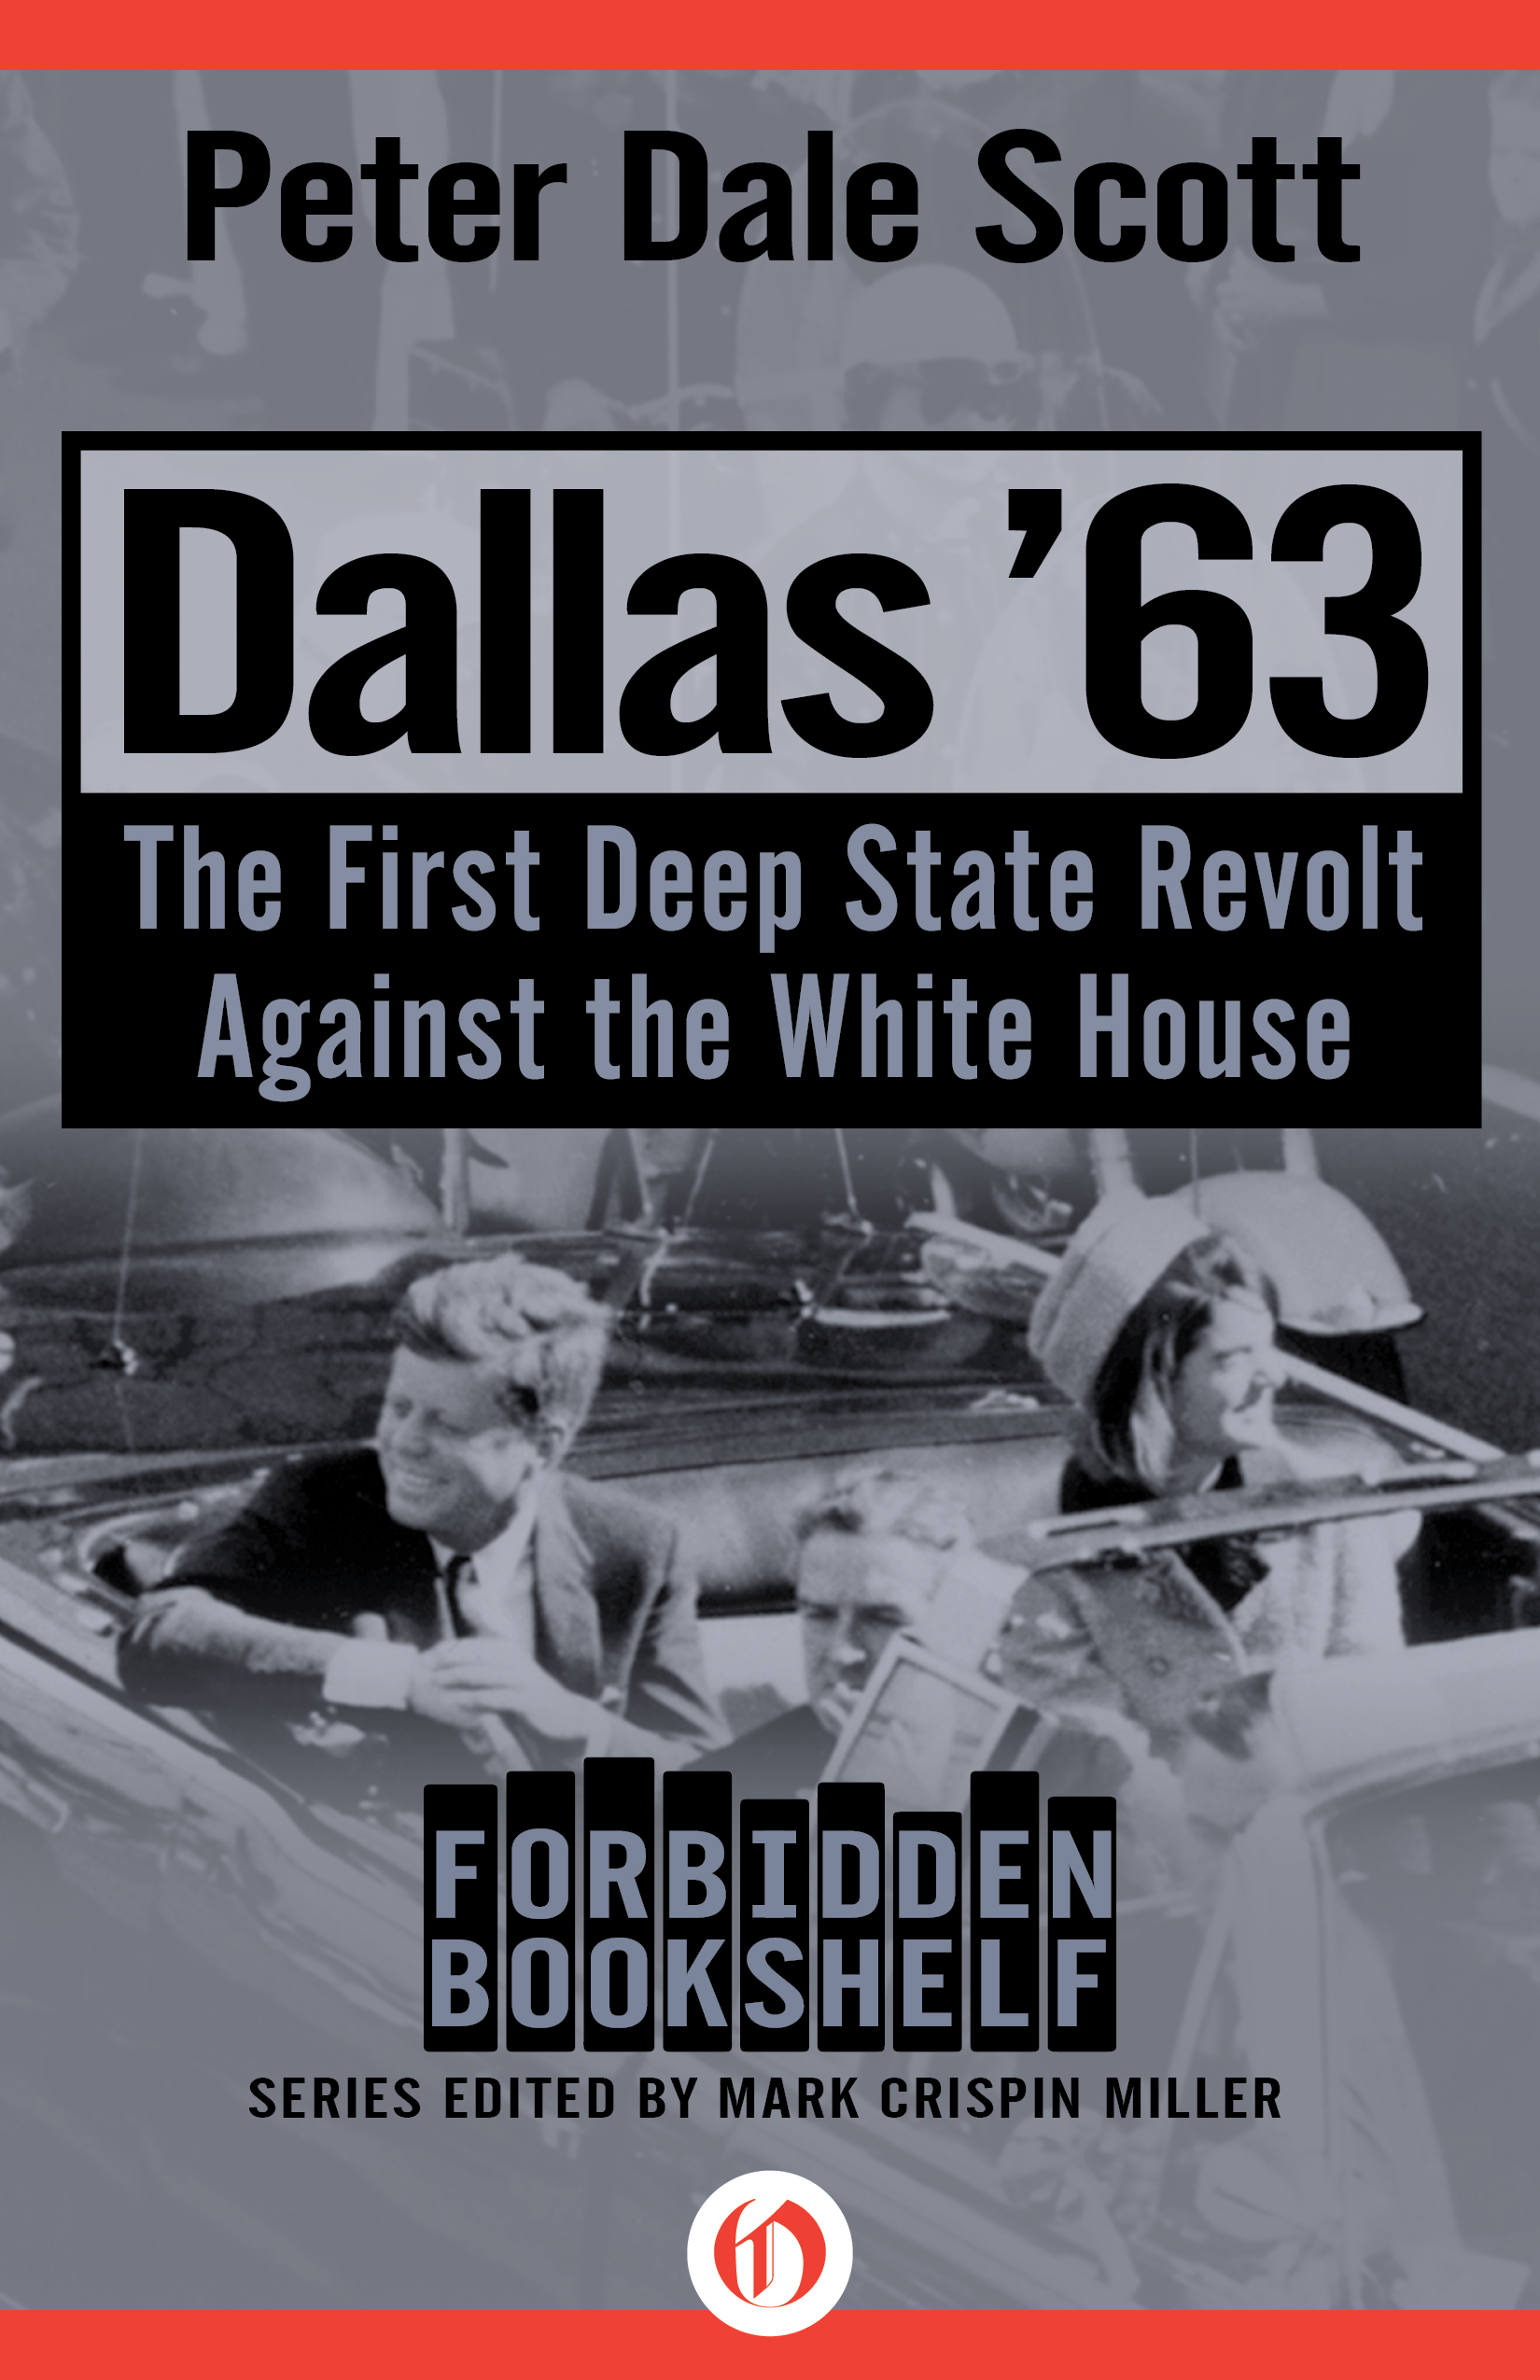 Dallas 63: The First Deep State Revolt Against the White House Peter Dale Scott